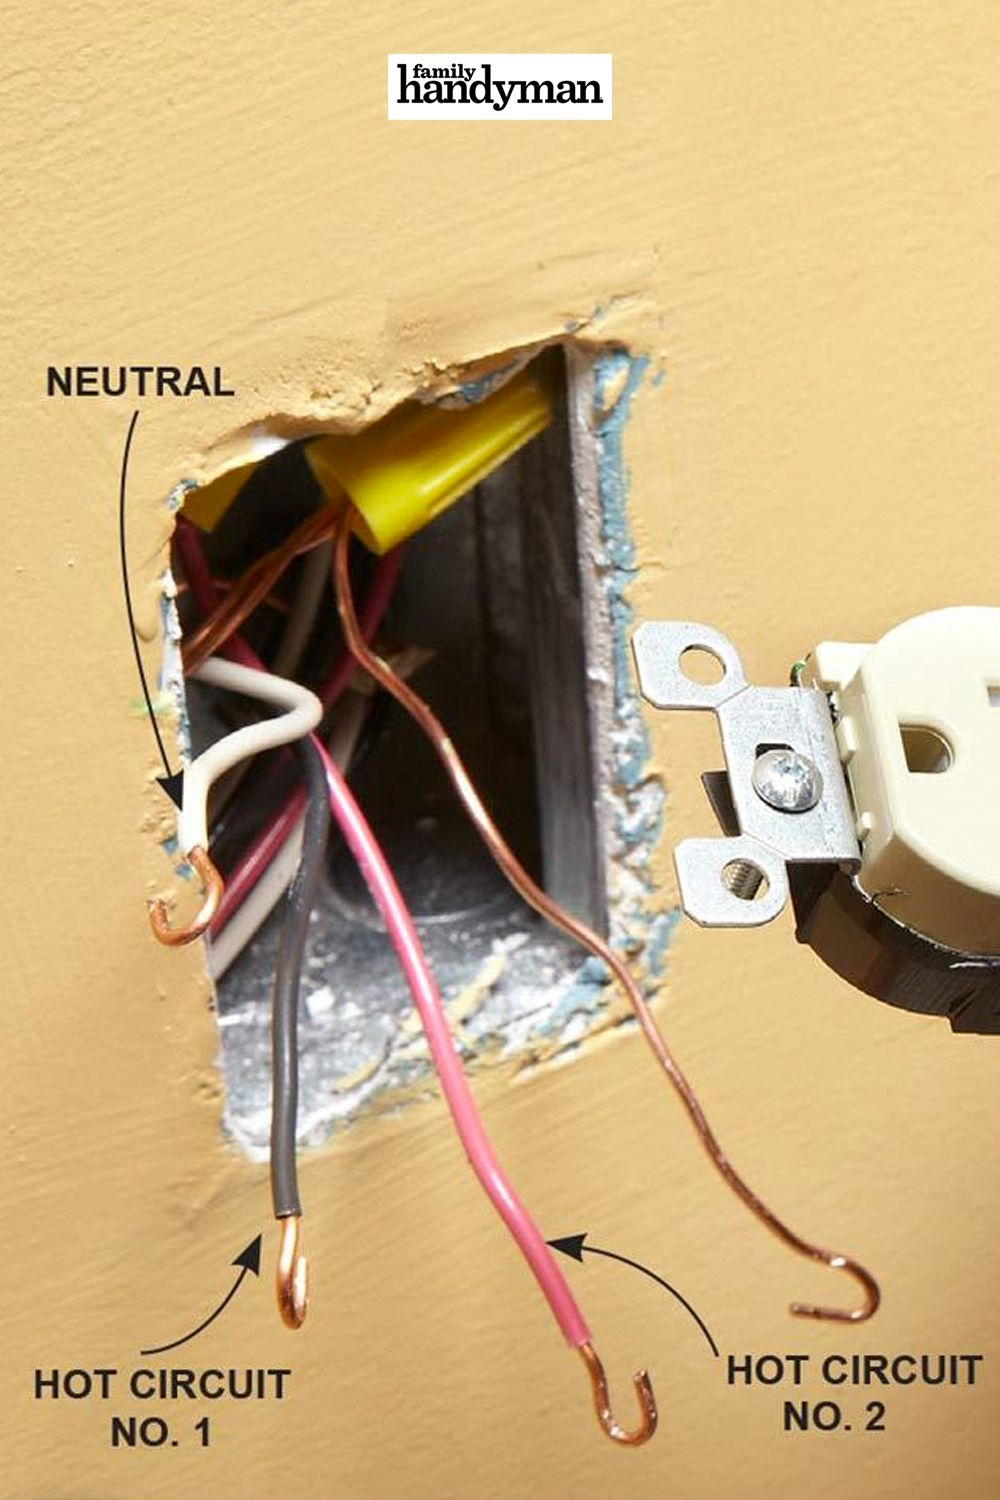 27 Top Tips For Wiring Switches And Outlets Yourself In 2020 Diy Home Repair Diy Electrical Diy On A Budget